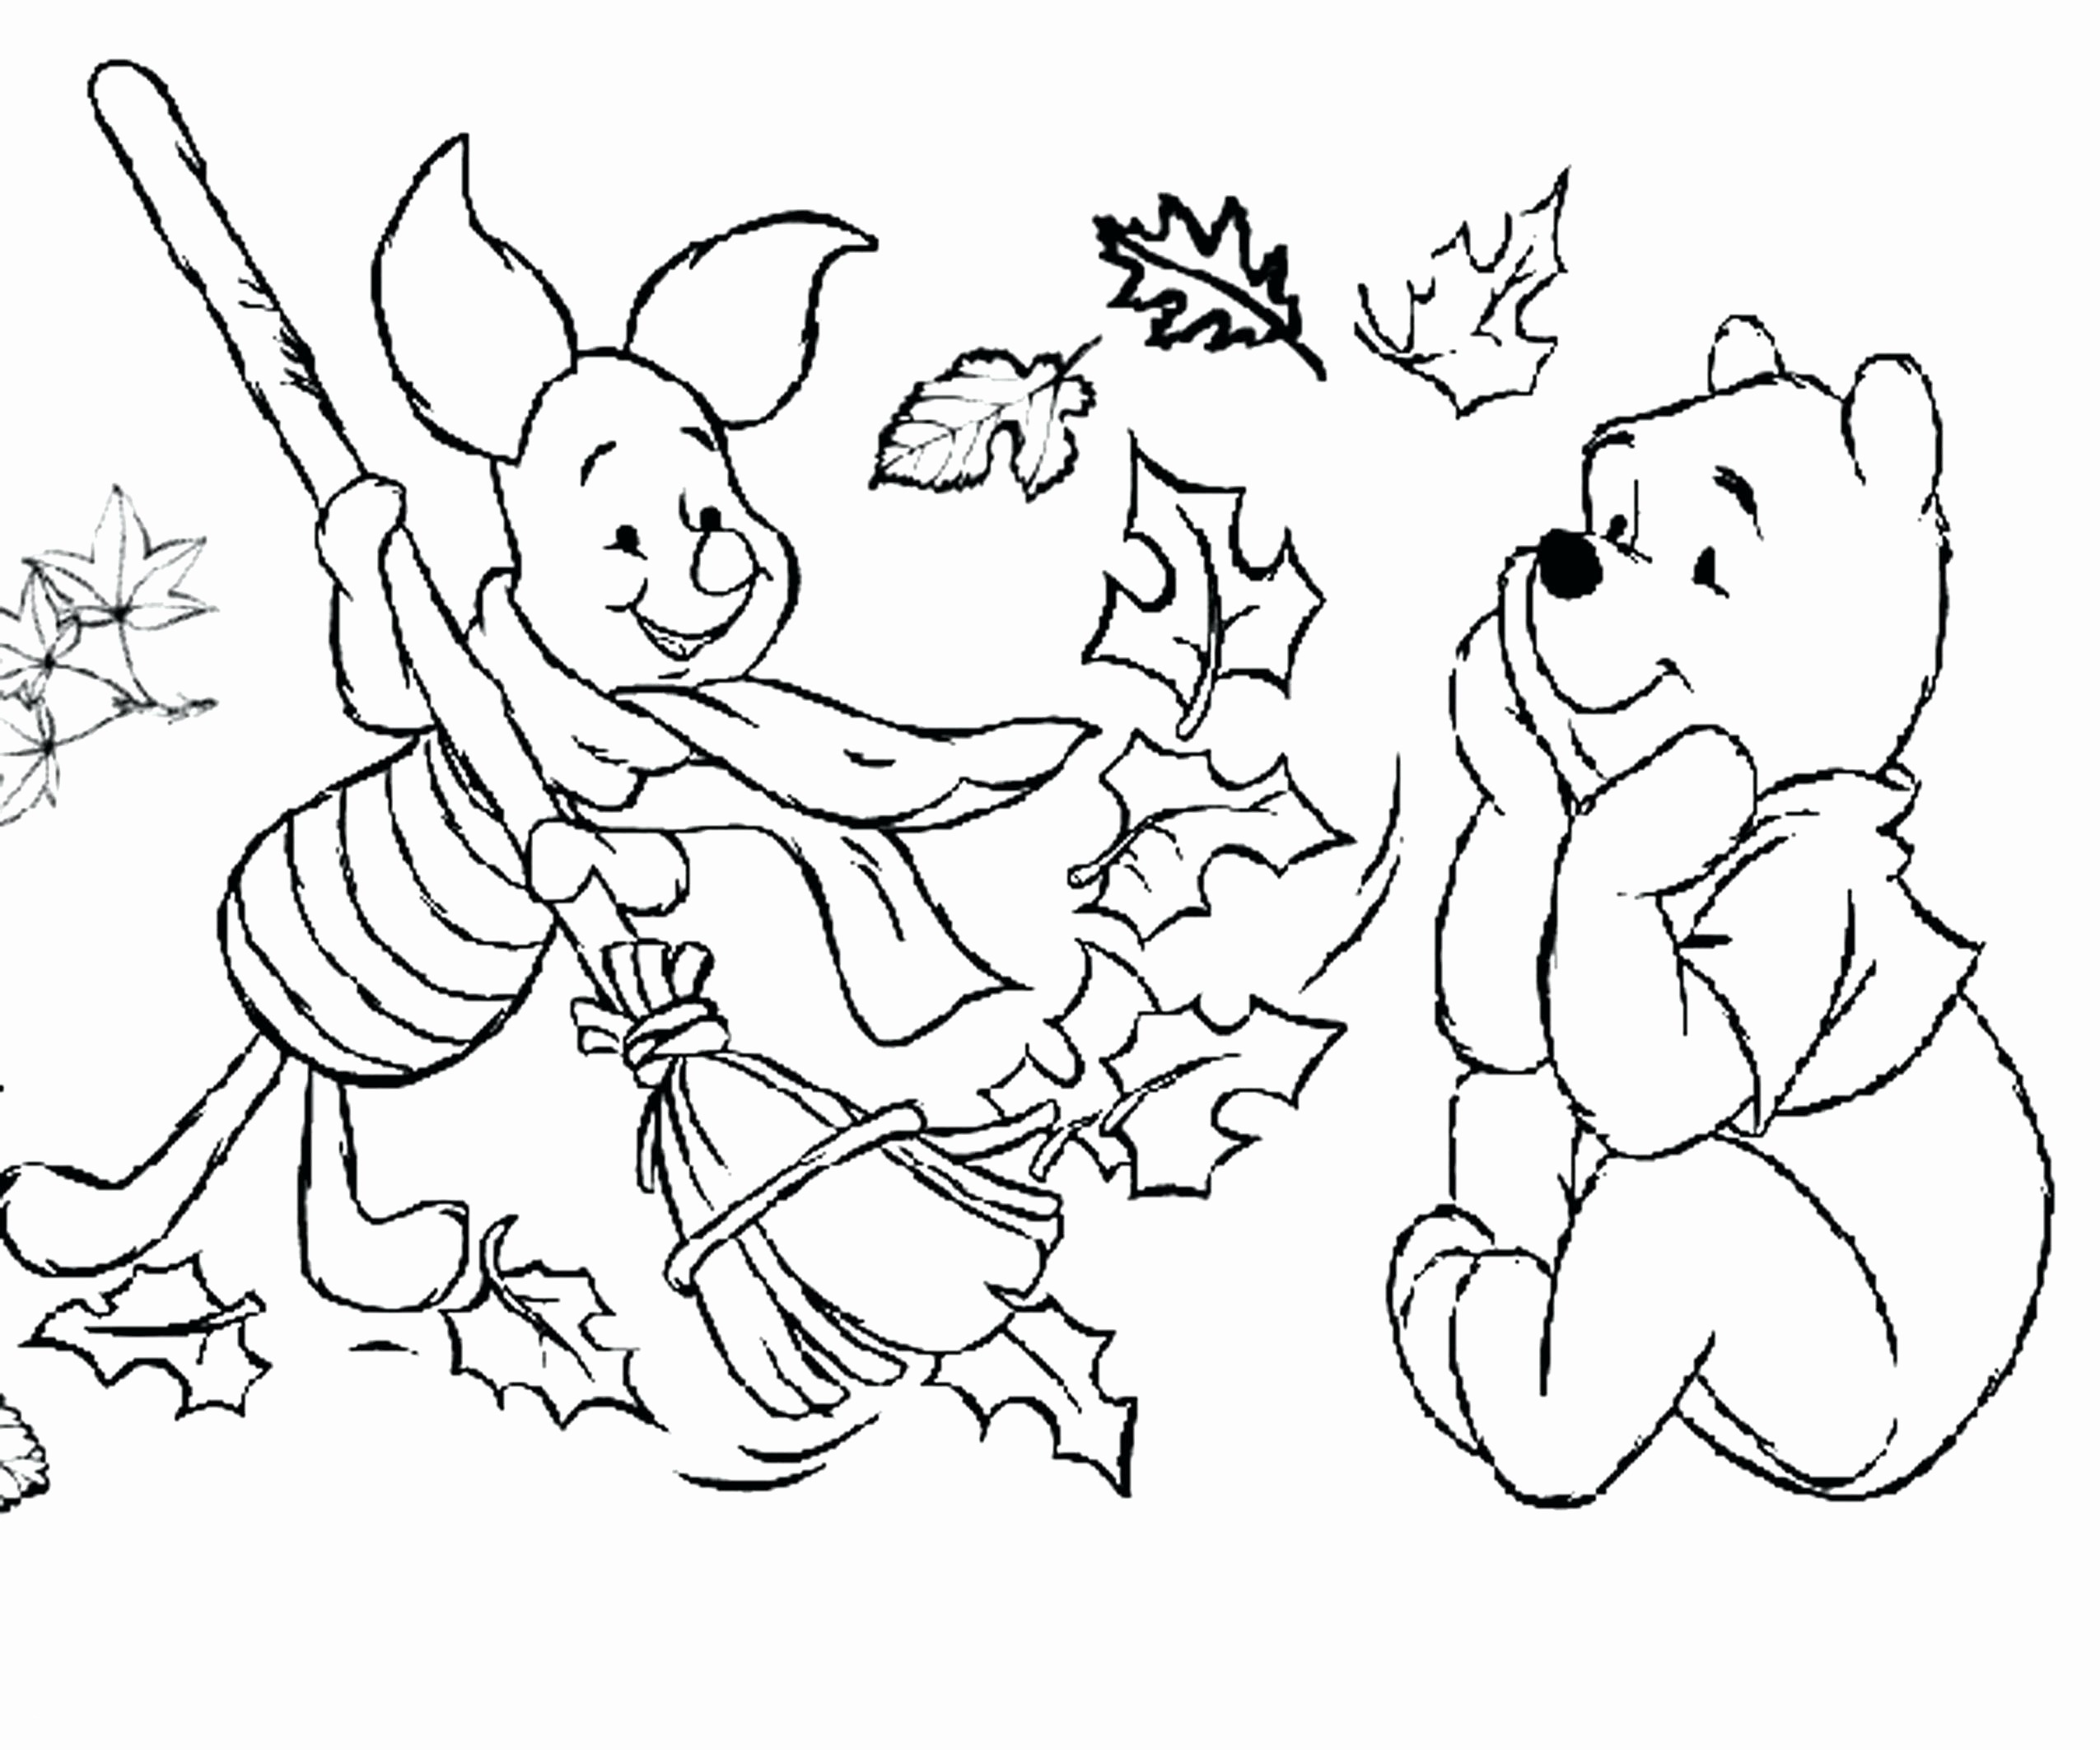 free thanksgiving coloring pages for preschoolers Download-Coloring Pages for Thanksgiving for Kids Free Coloring Unique Free Kids S Best Page Coloring 0d 17-o